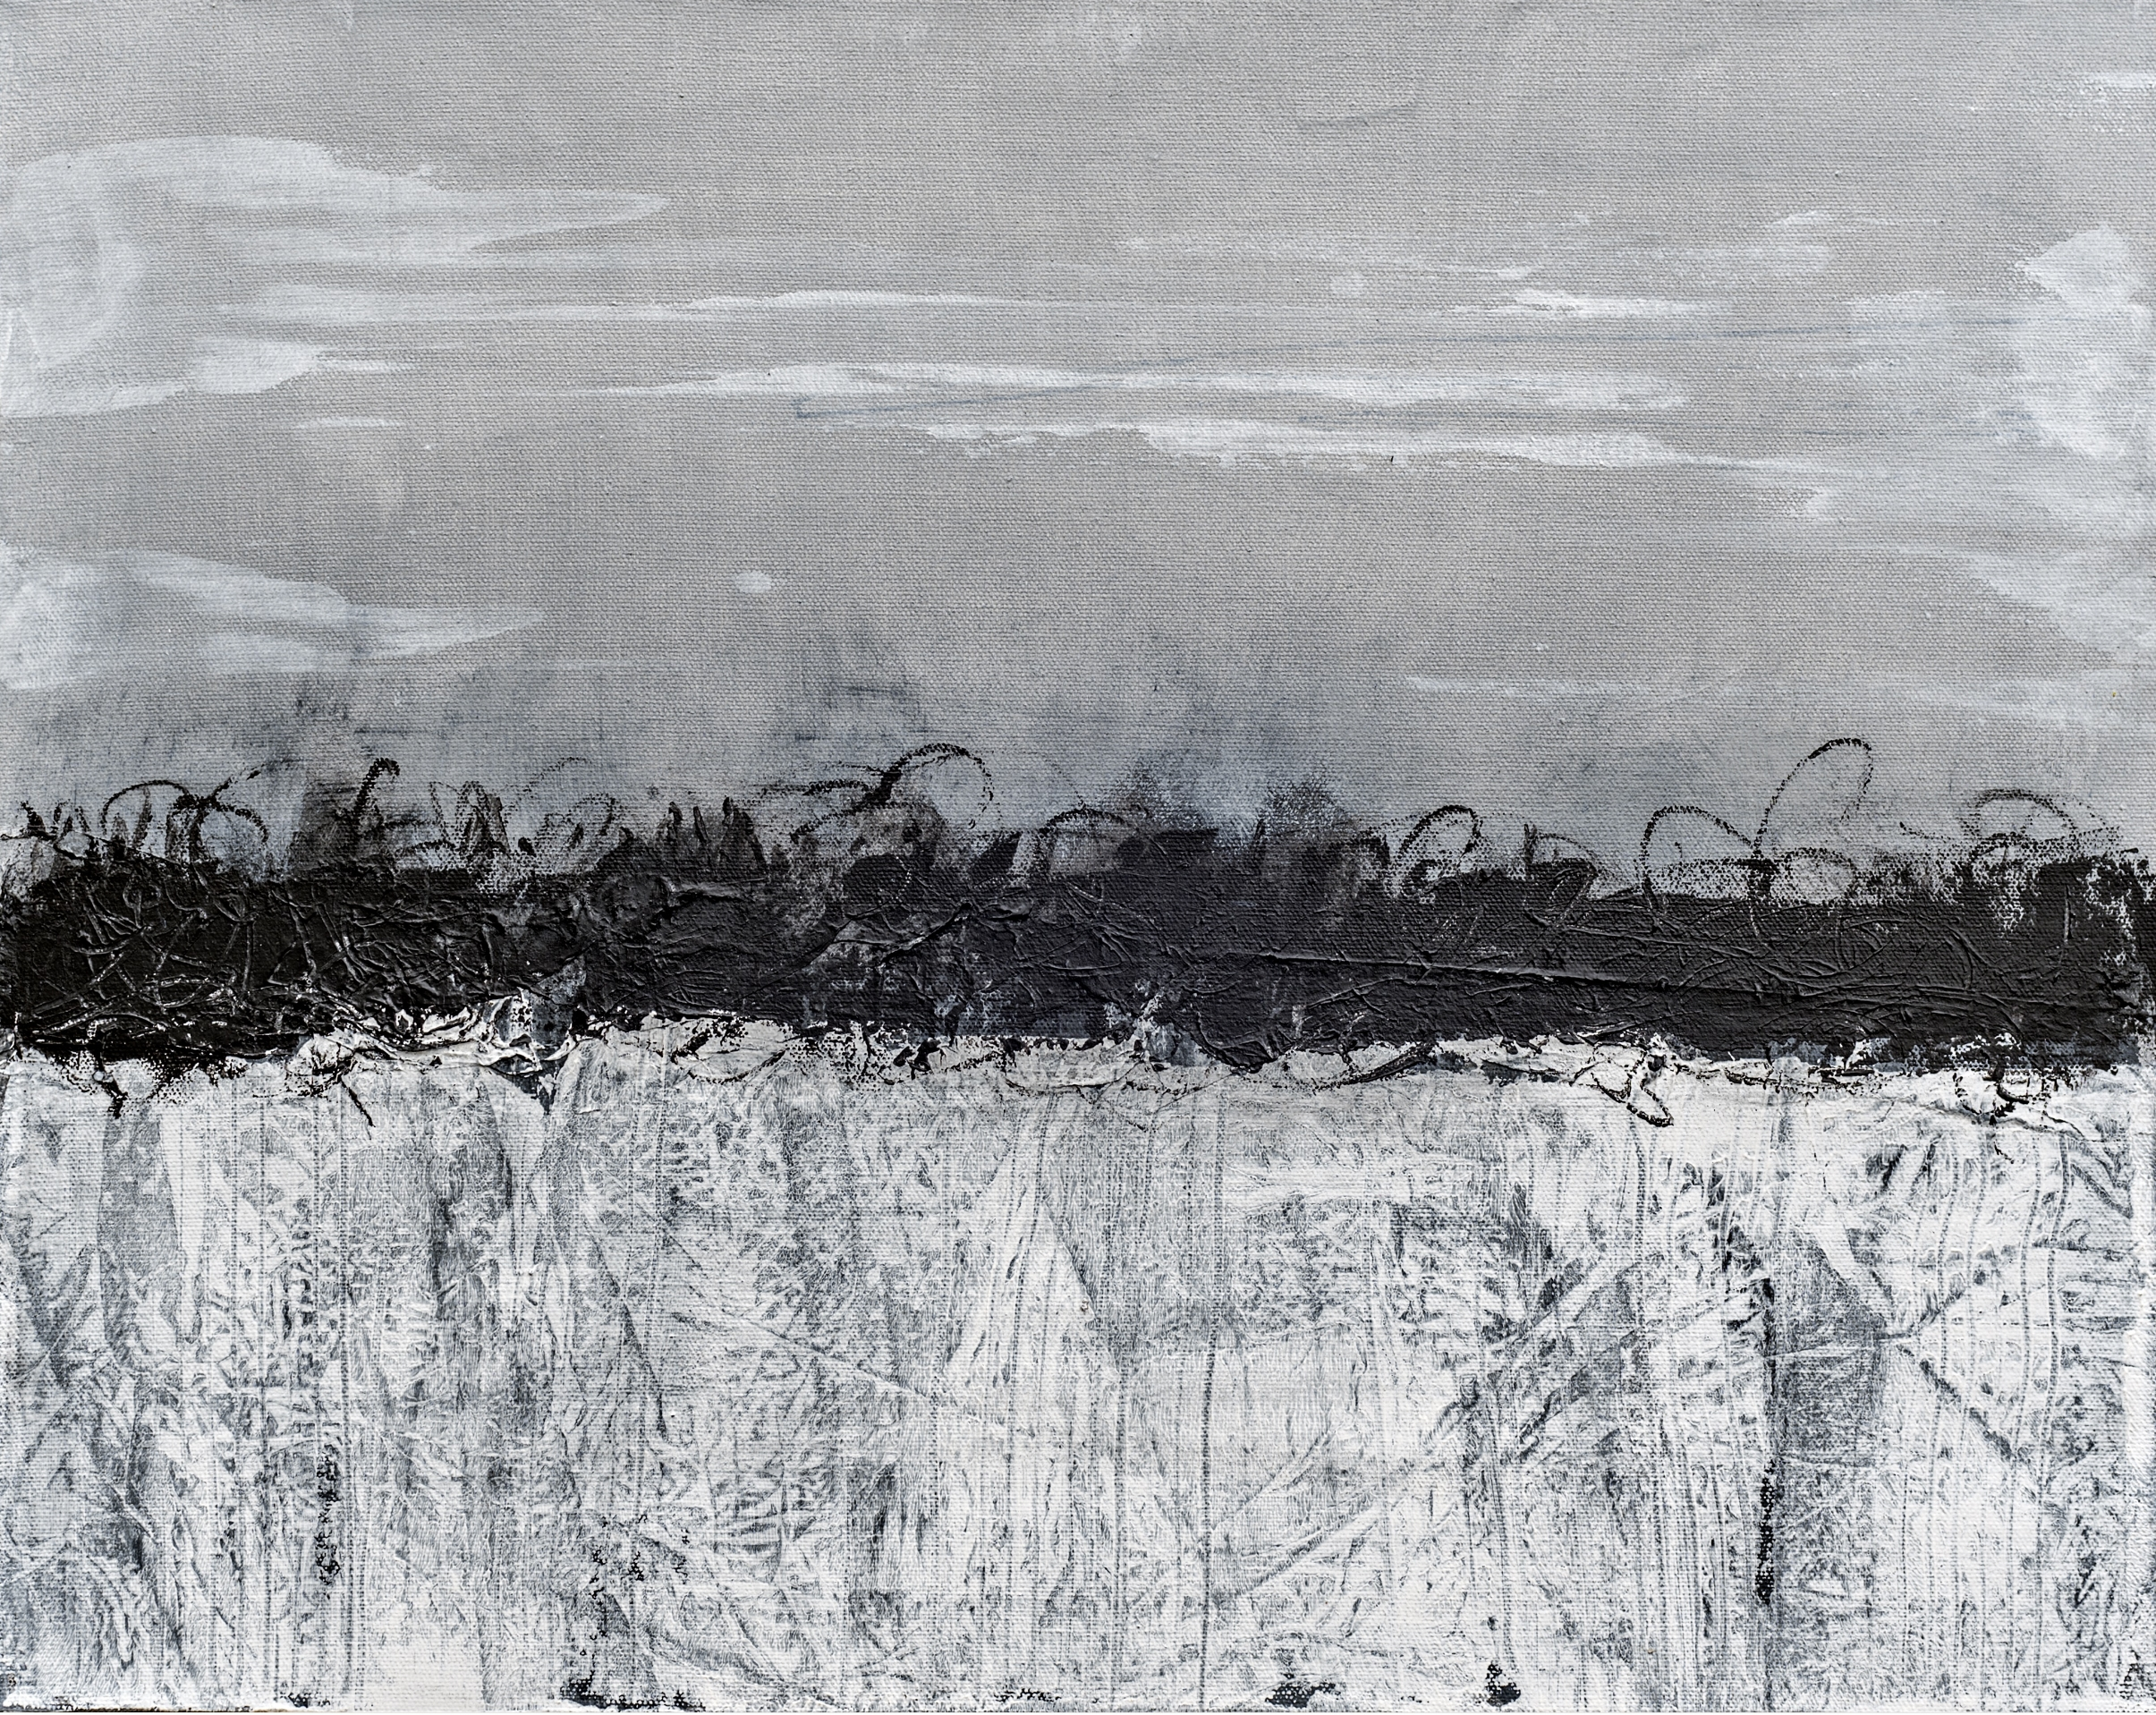 White Swamp II, Oil and Cold Wax painting by Bob Worthy (MG: April 2021)